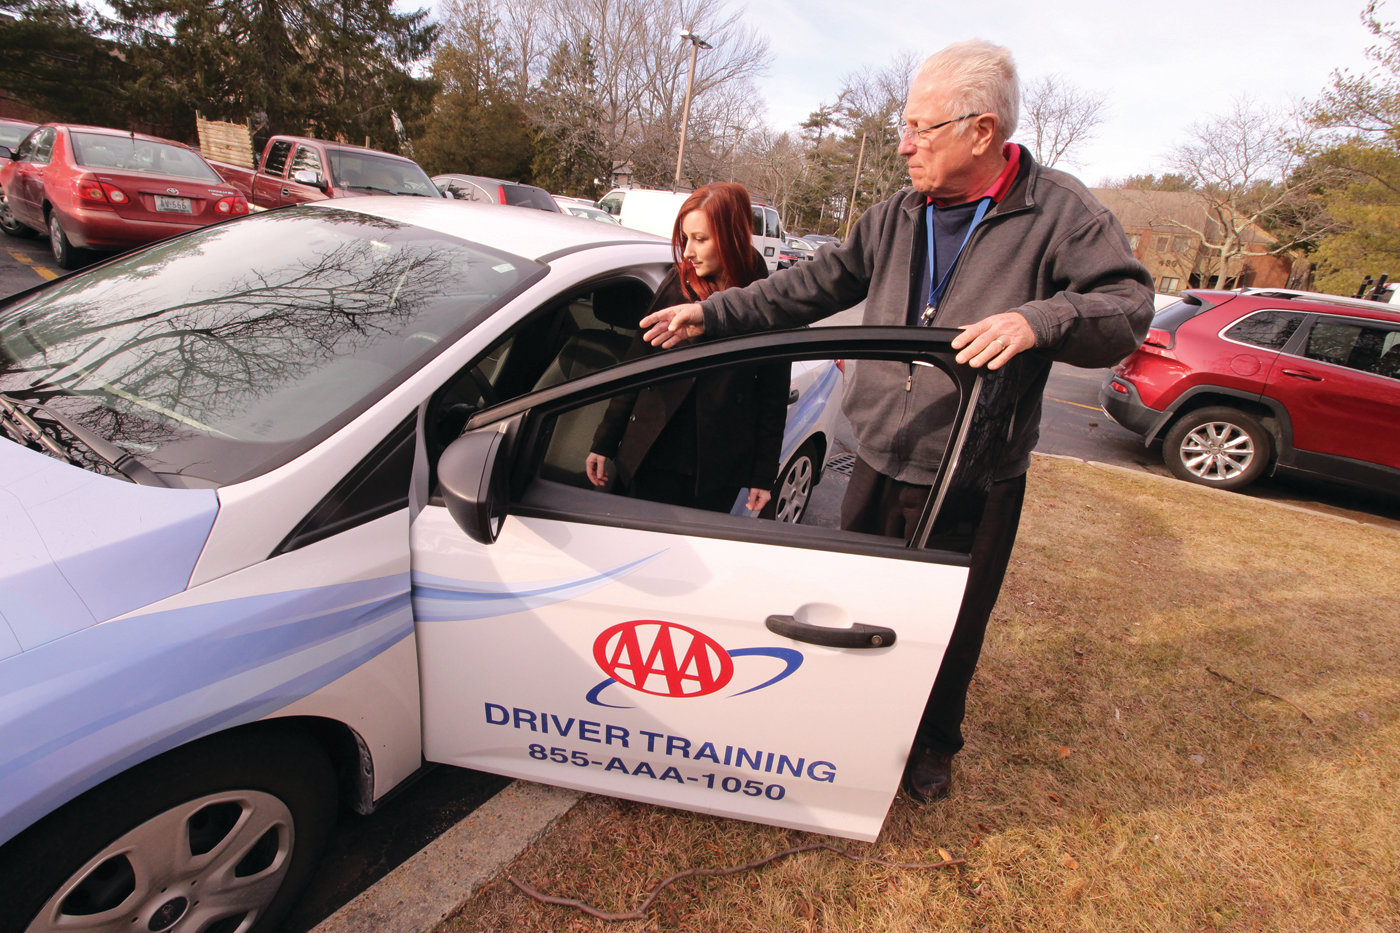 AN INTRODUCTION: Driving trainer Stephen Fenton goes over features of a vehicle before he and Kayla Broadmeadow get in.